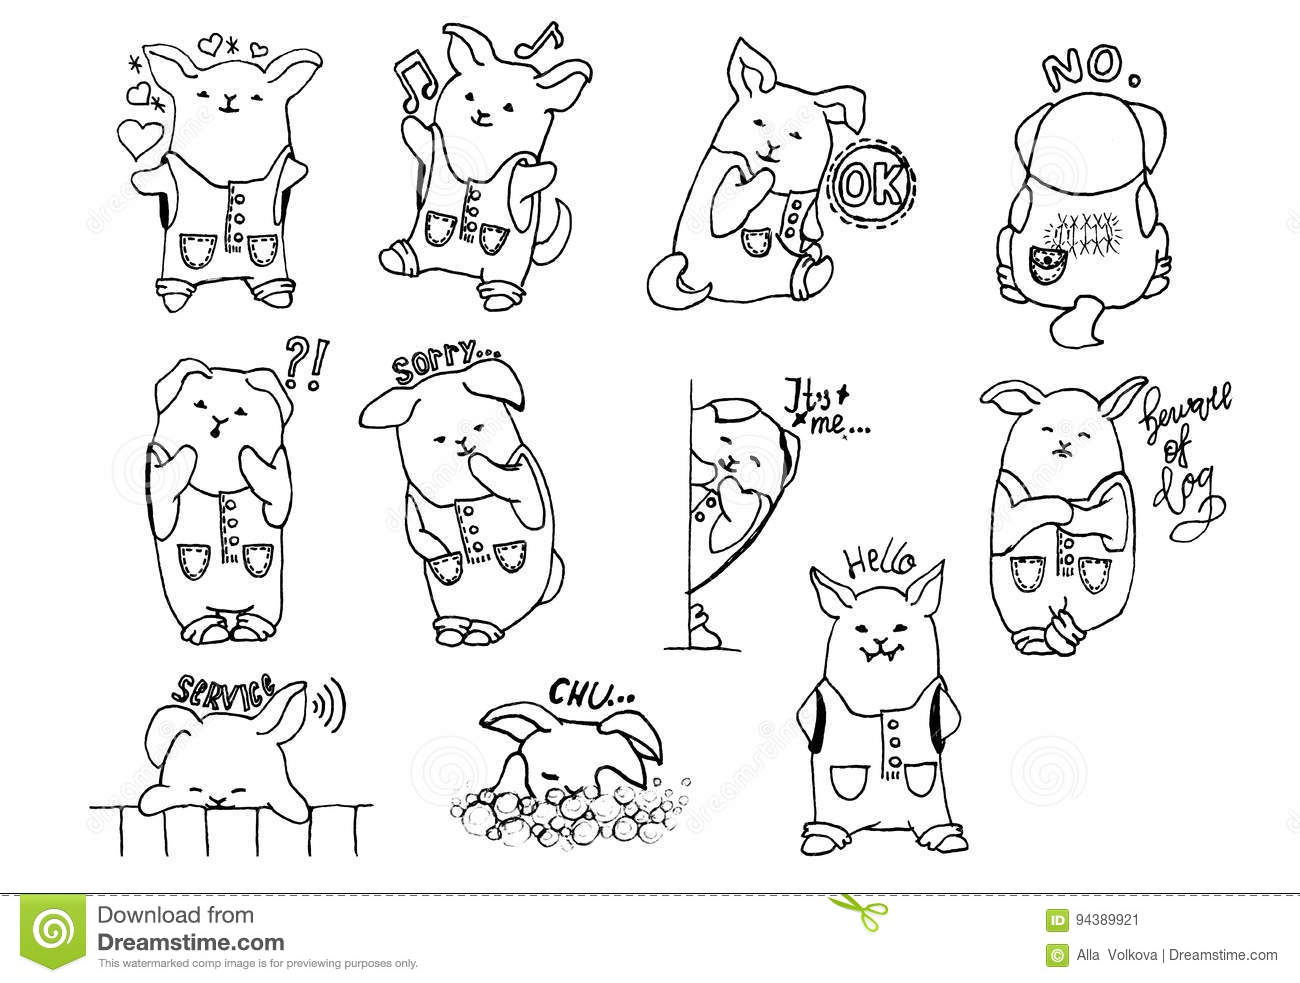 Image of: Cute Animal Kawaii Animals Freehand Drawing Cute Puppy In Overalls Dreamstimecom Kavaii Dog Stock Illustration Illustration Of Boys Cartoon 94389921